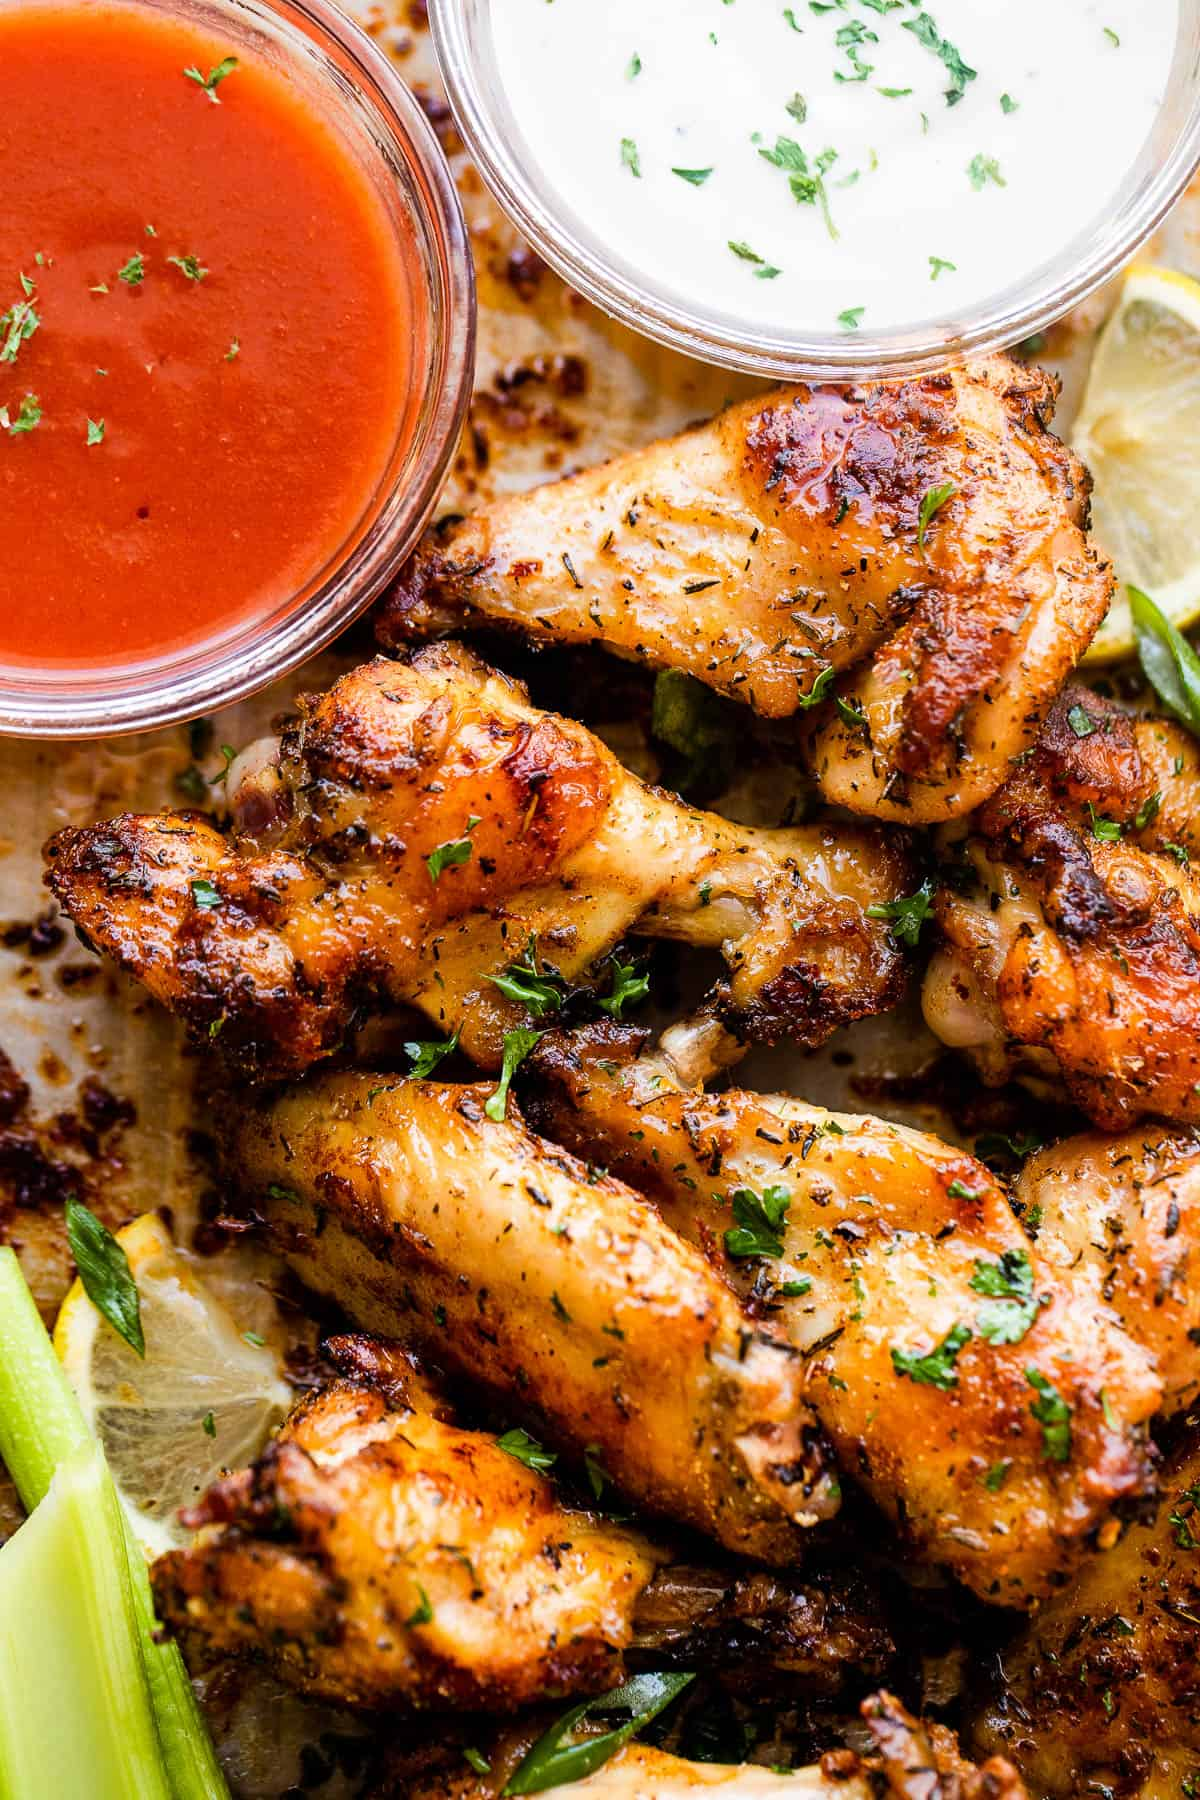 chicken wings on a platter served with sriracha sauce, ranch, and celery sticks.